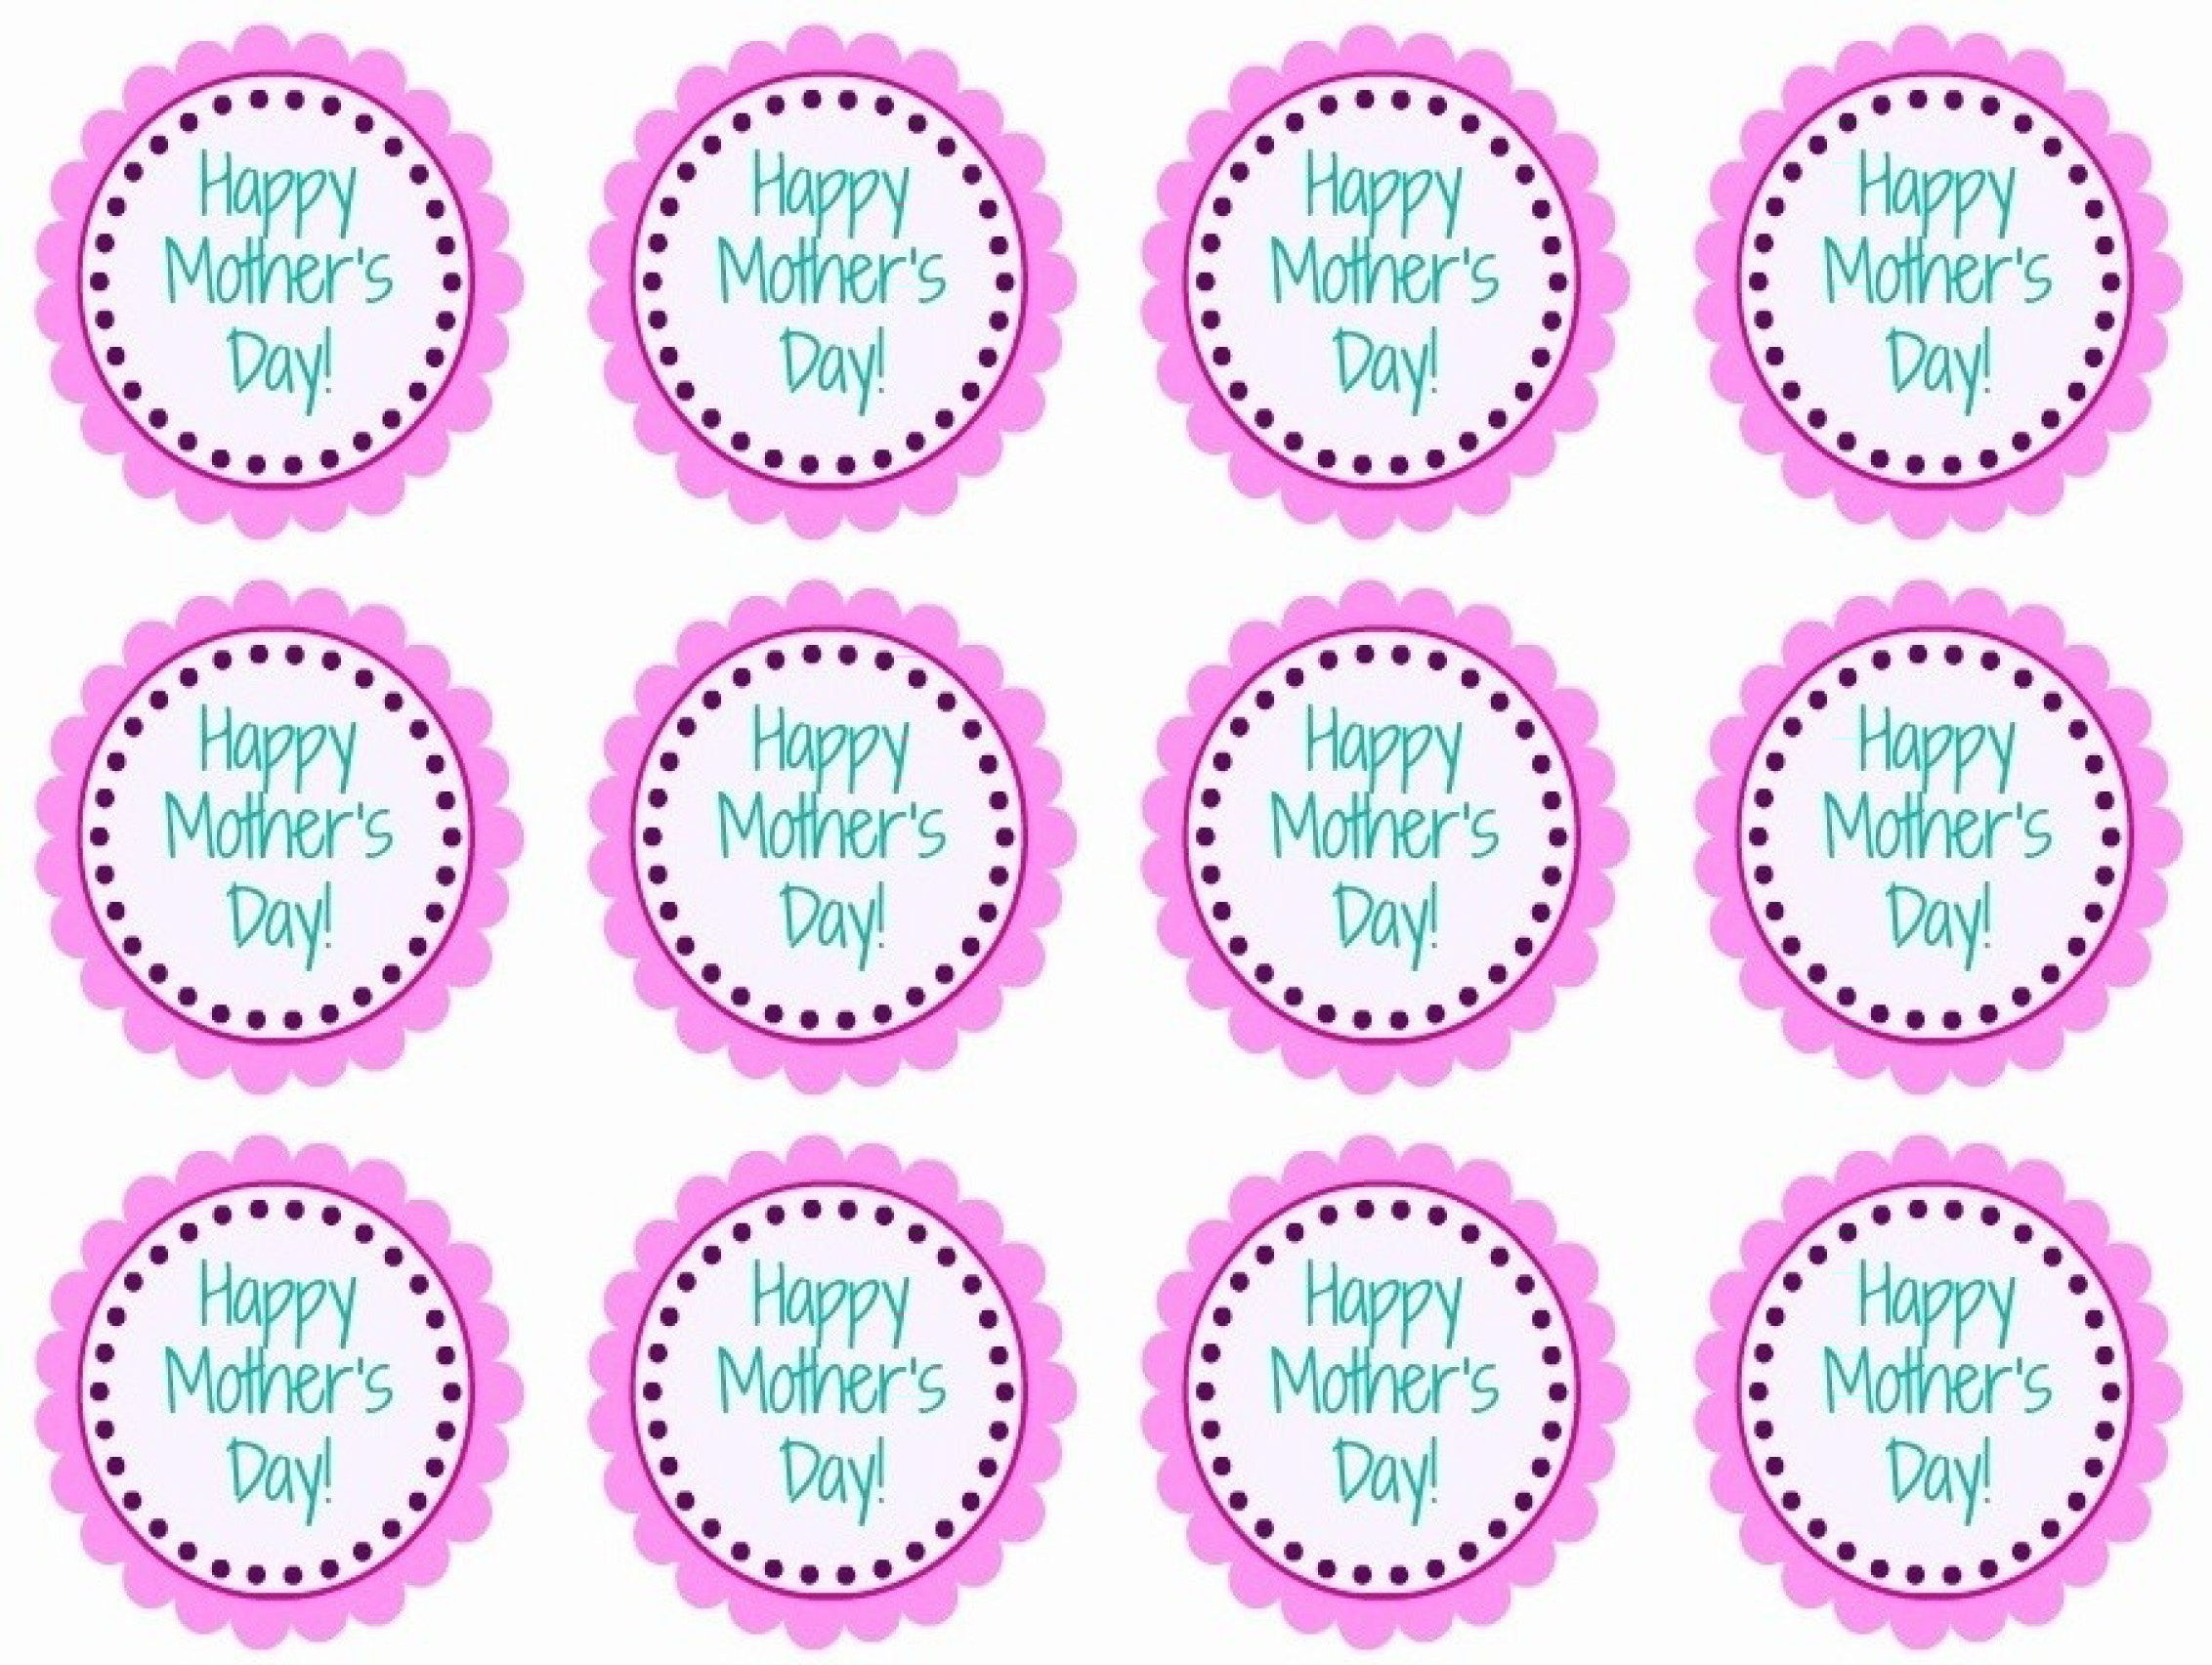 Mother's Day Printable Cupcake Toppers Diy Craft - Cupcake Topper Templates Free Printable